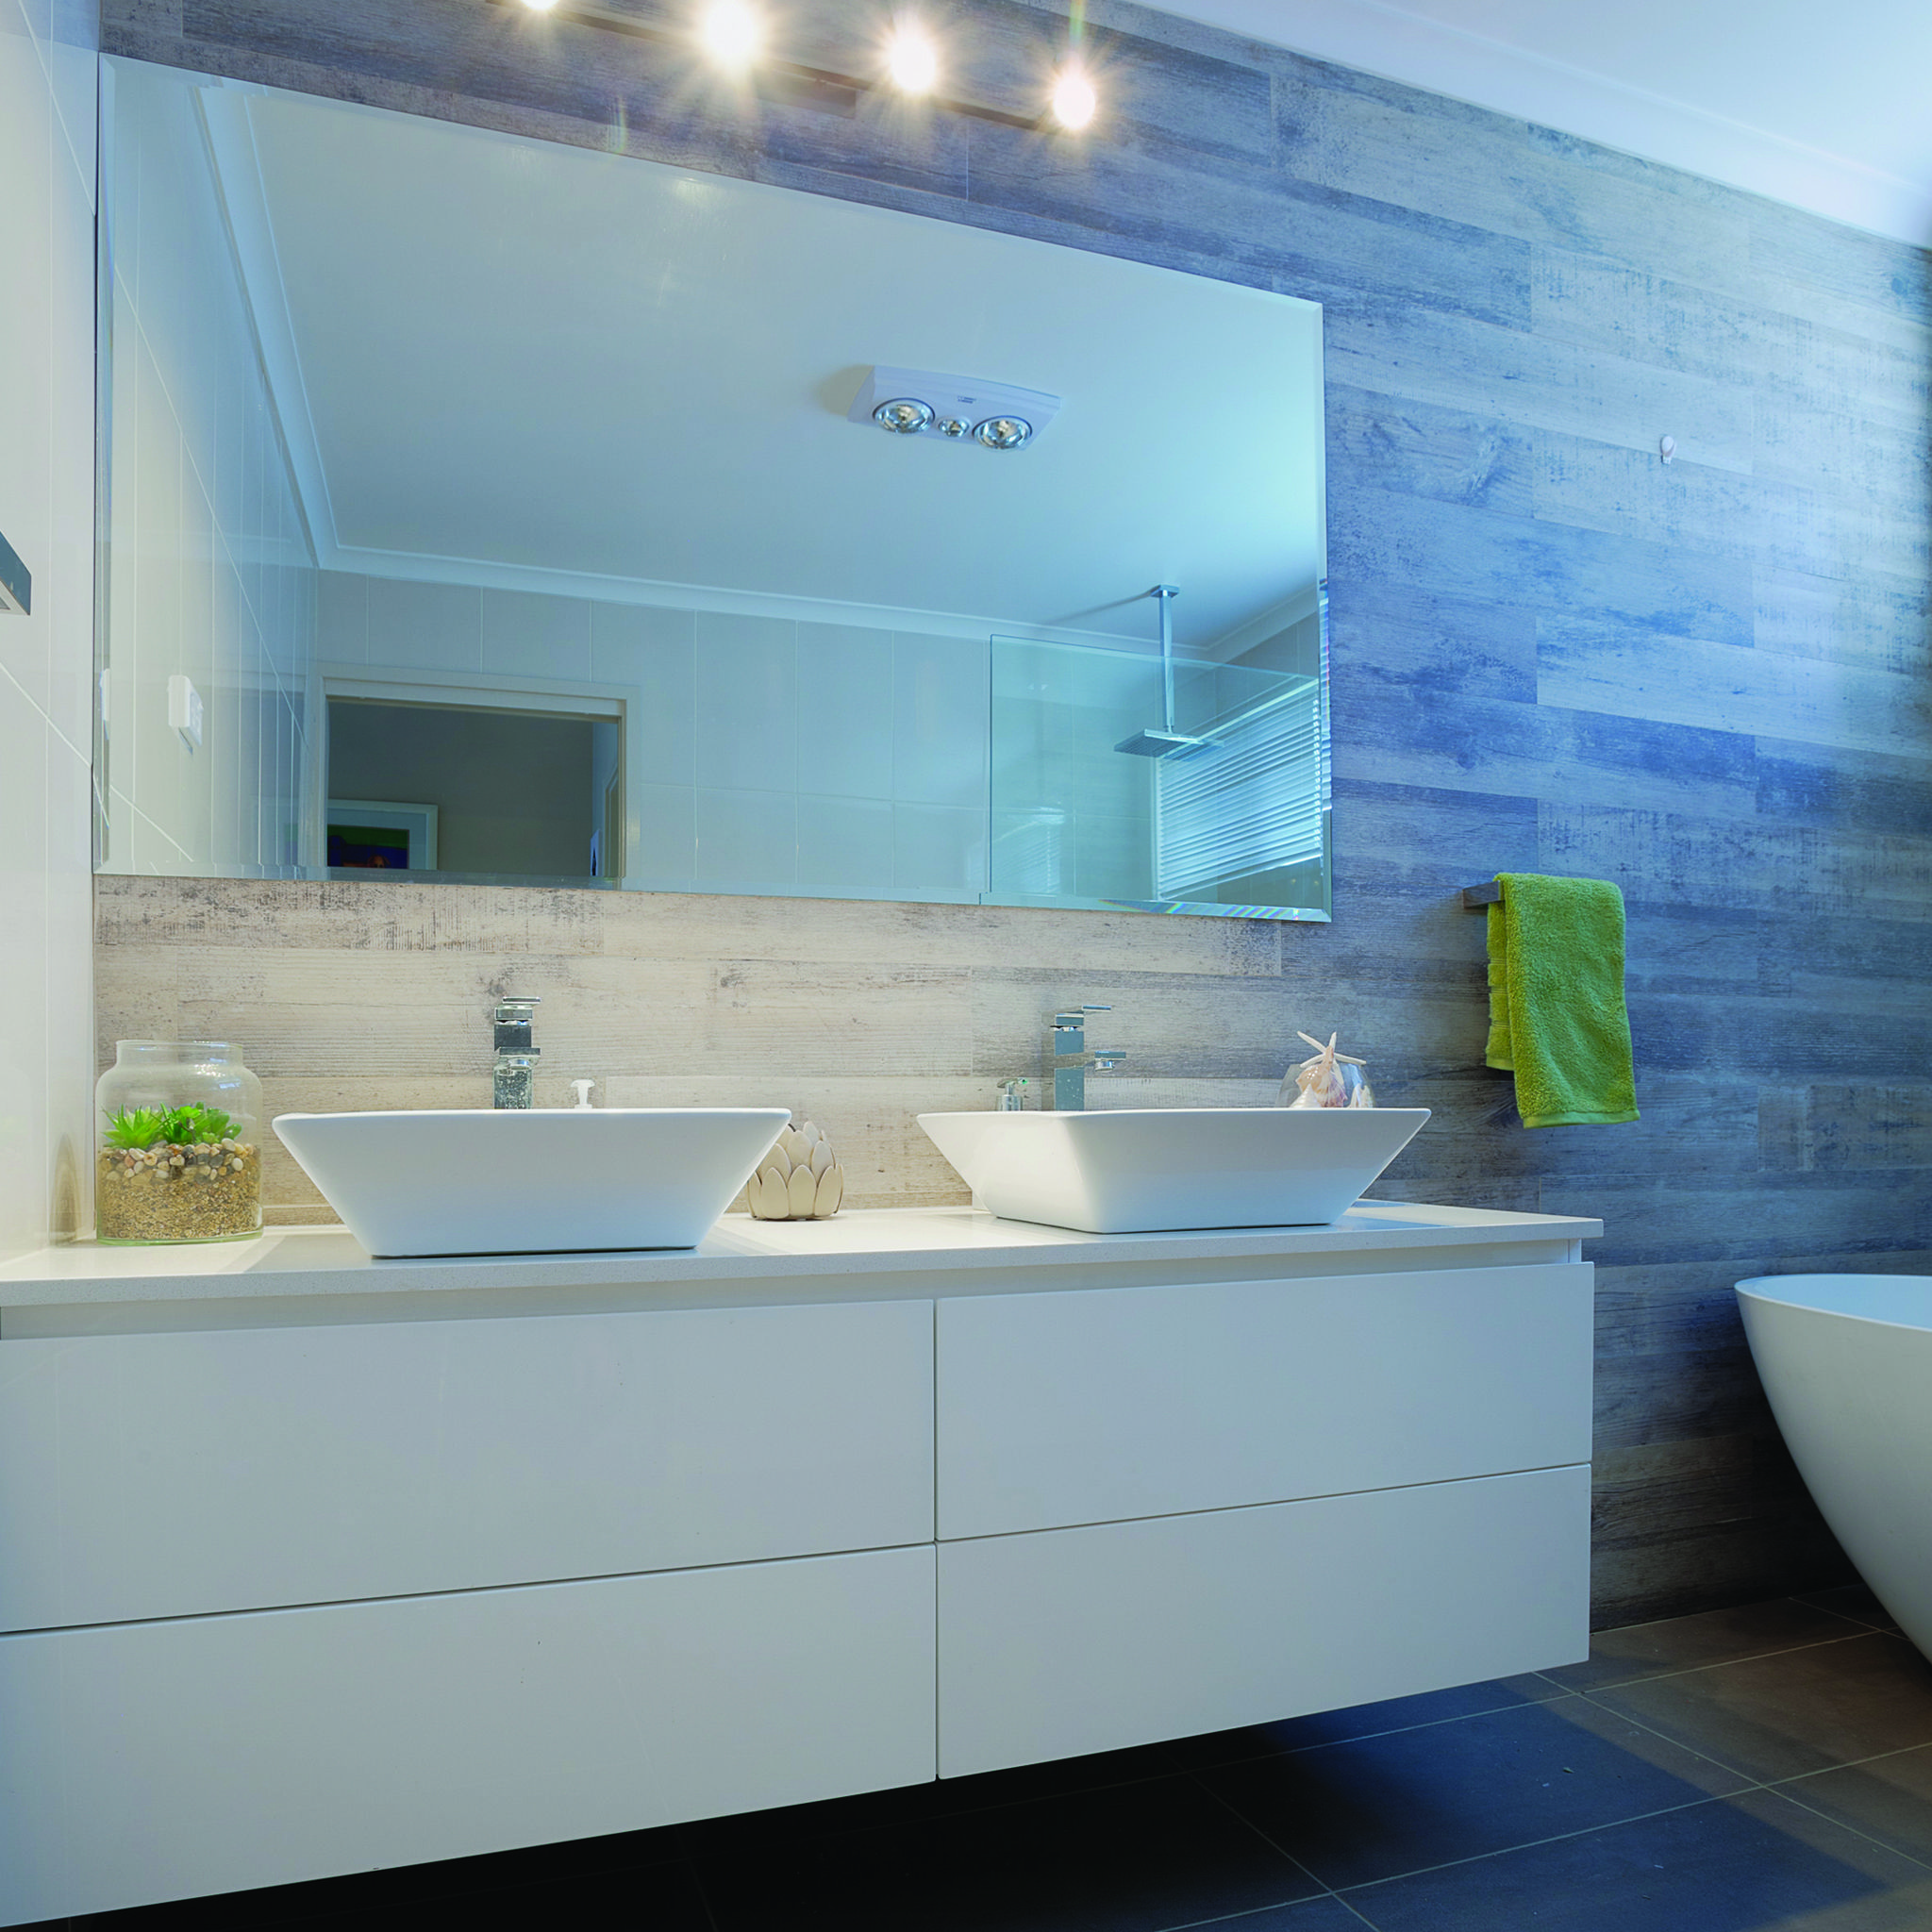 porcelain decor that interior with planks wood for white wall looks tile marble look and plank table ideas bathroom color mixed curtains like mounted window